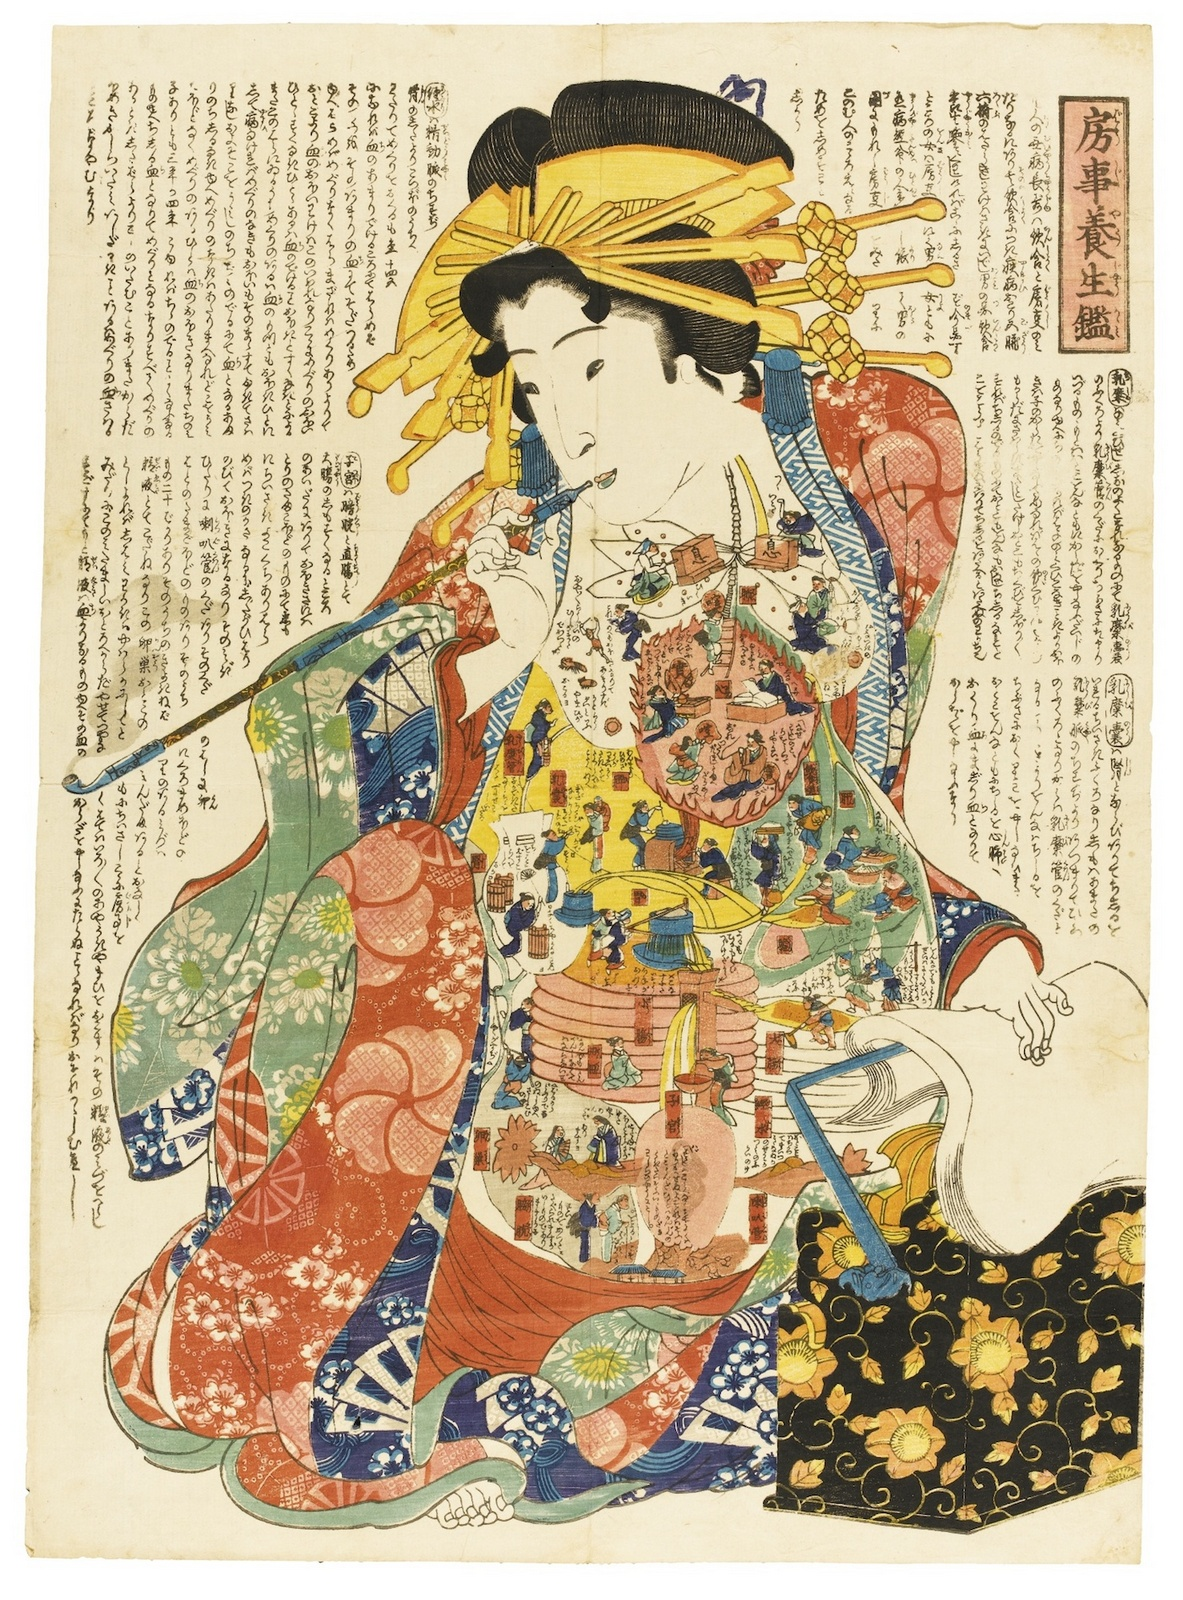 ukiyo-e internal bodily functions (2)